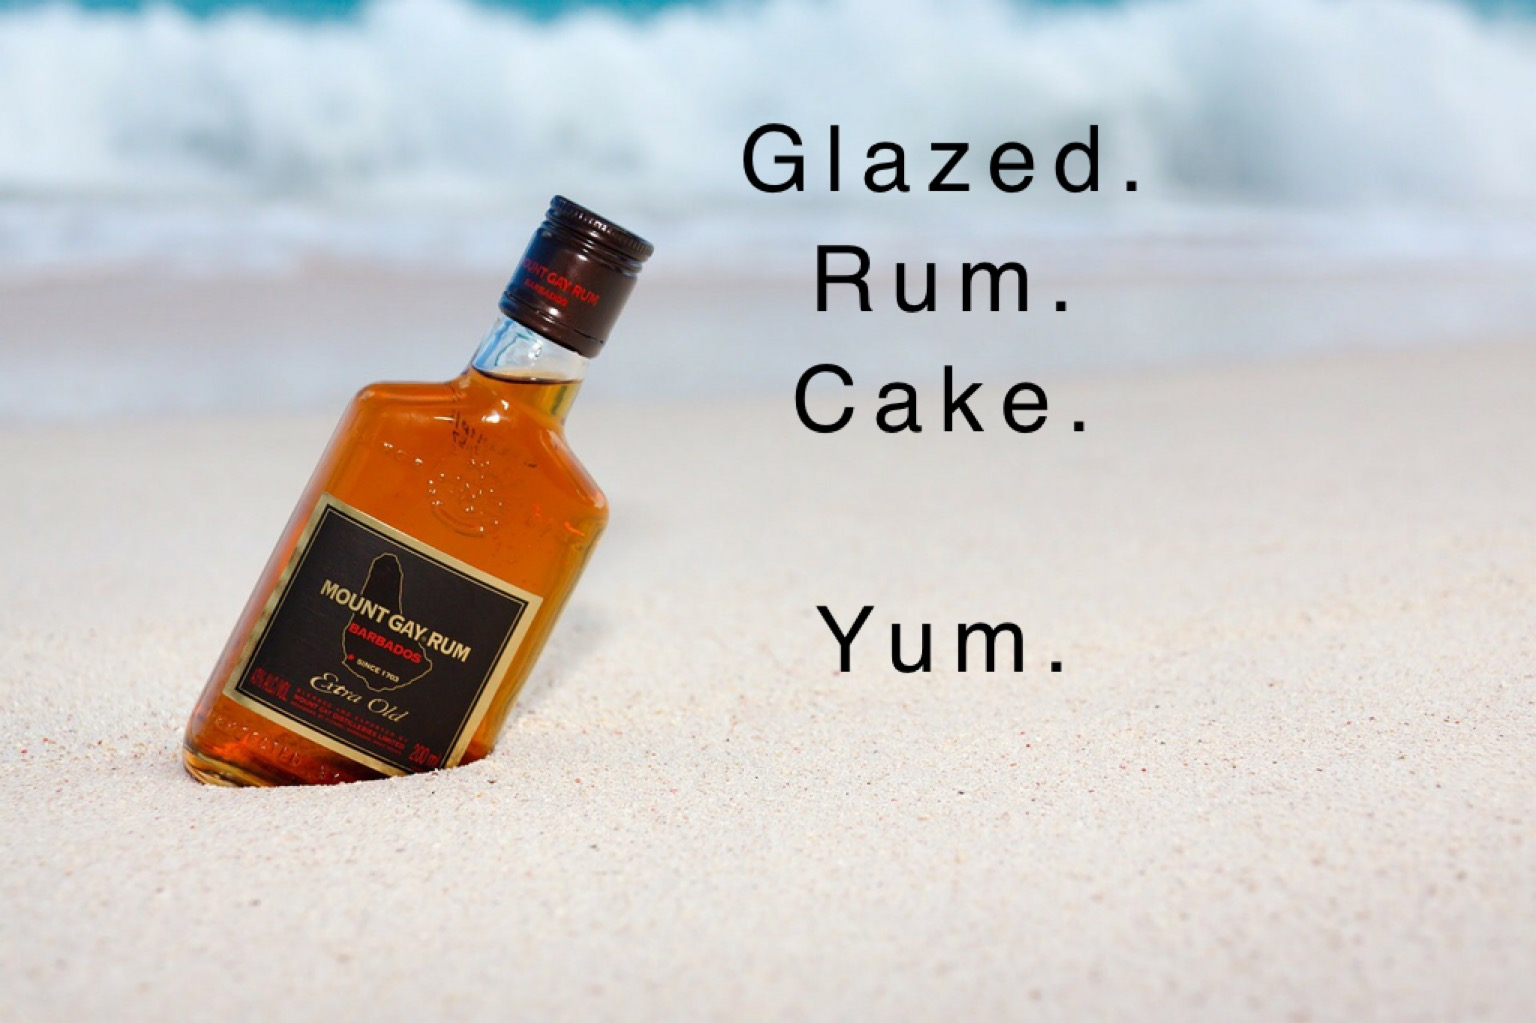 WOW!!! Glazed Rum Cake.